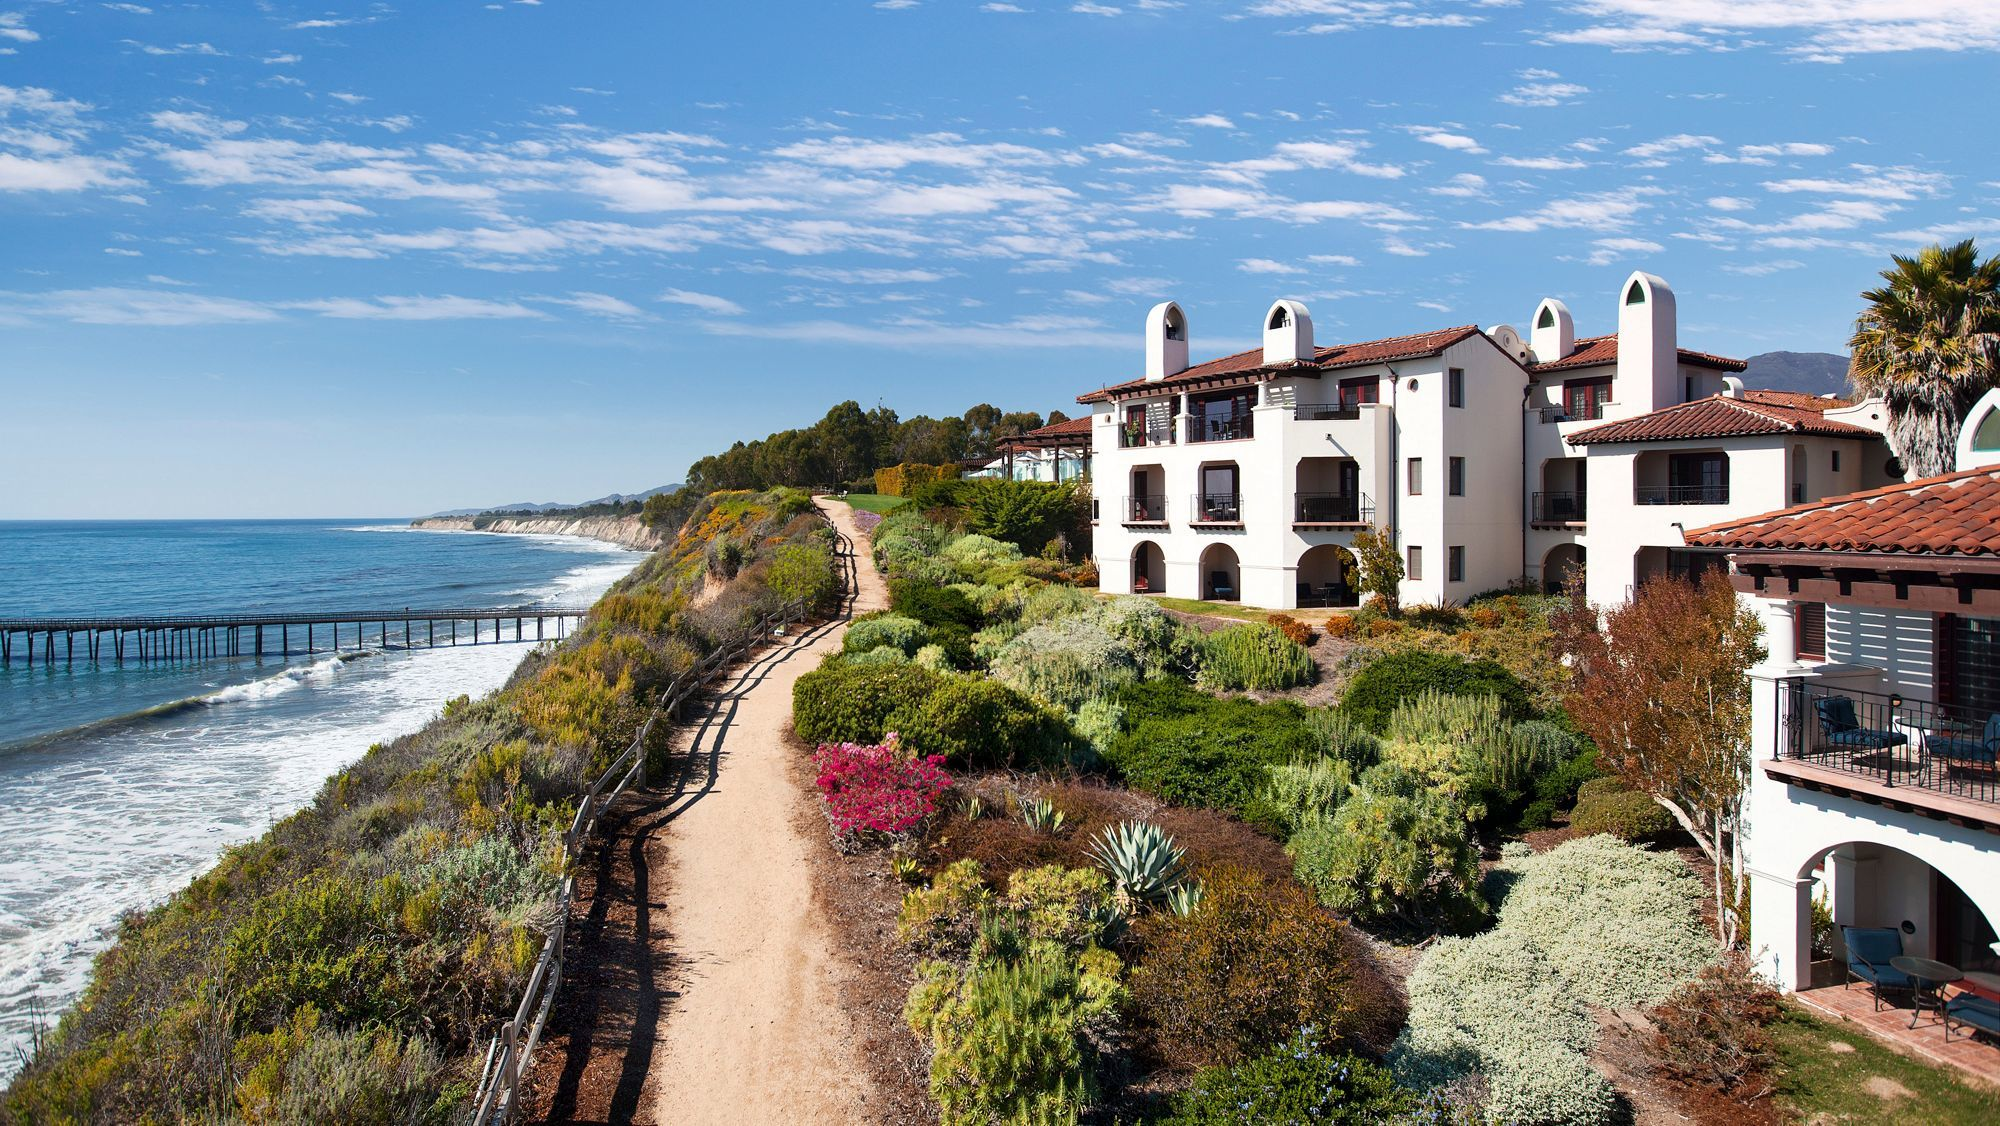 The best hotels in Santa Barbara